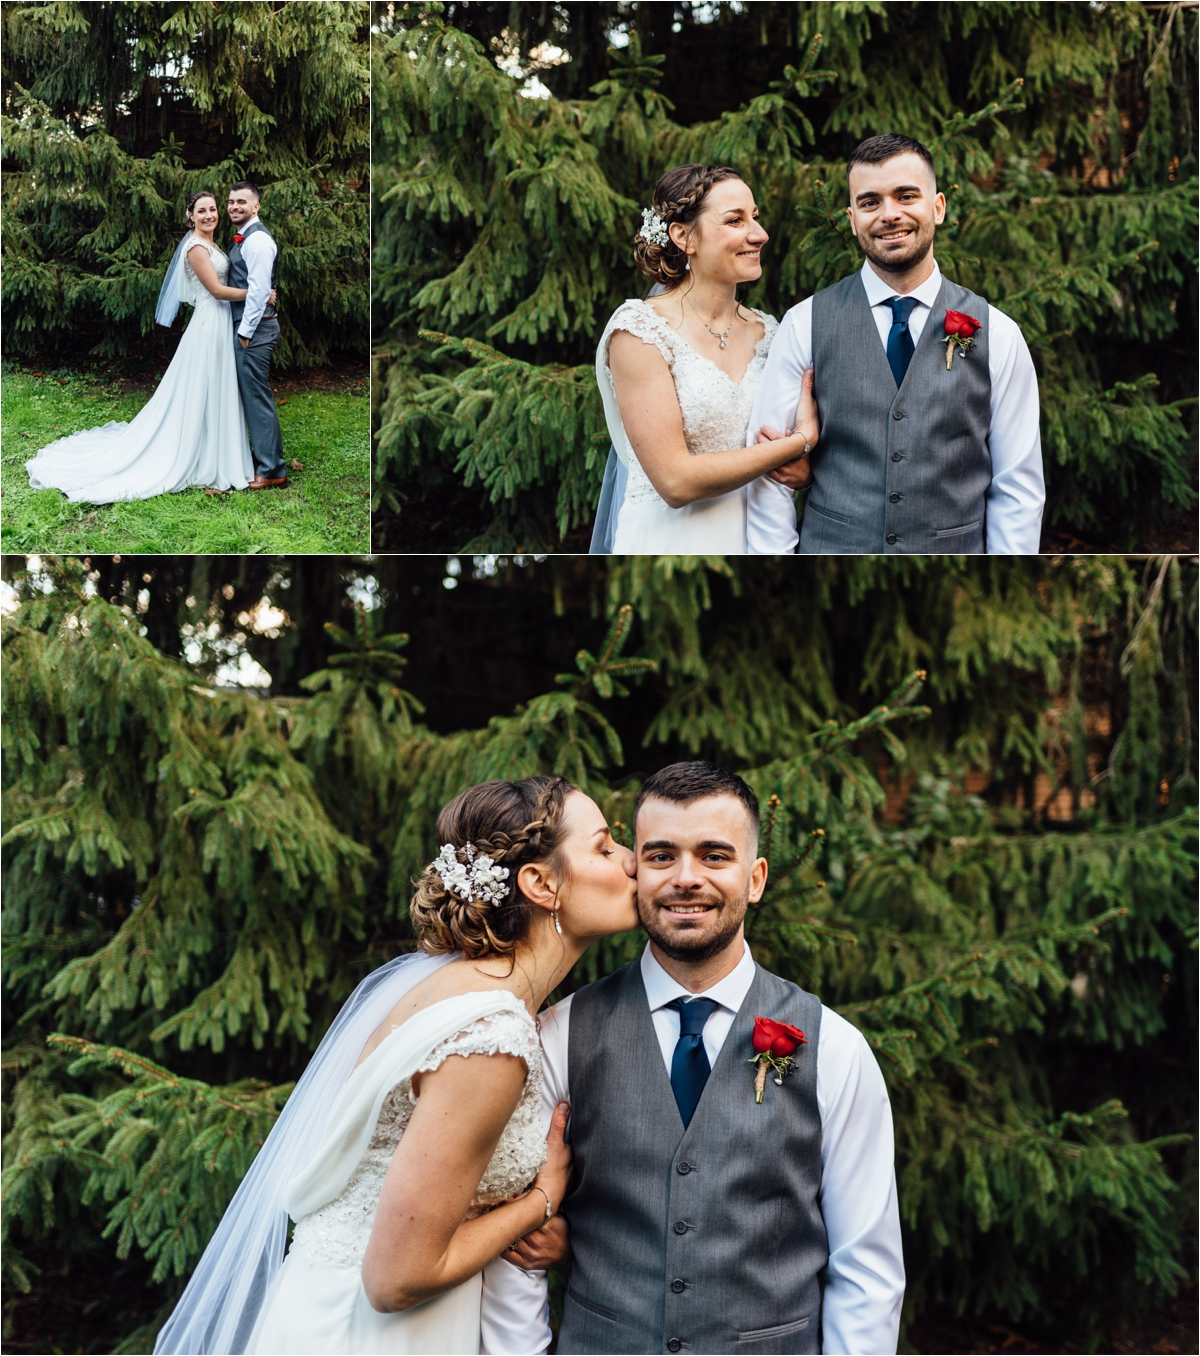 Sarah_&_Doug_Stroudsberg_Wedding_the_photo_farm_0059.jpg